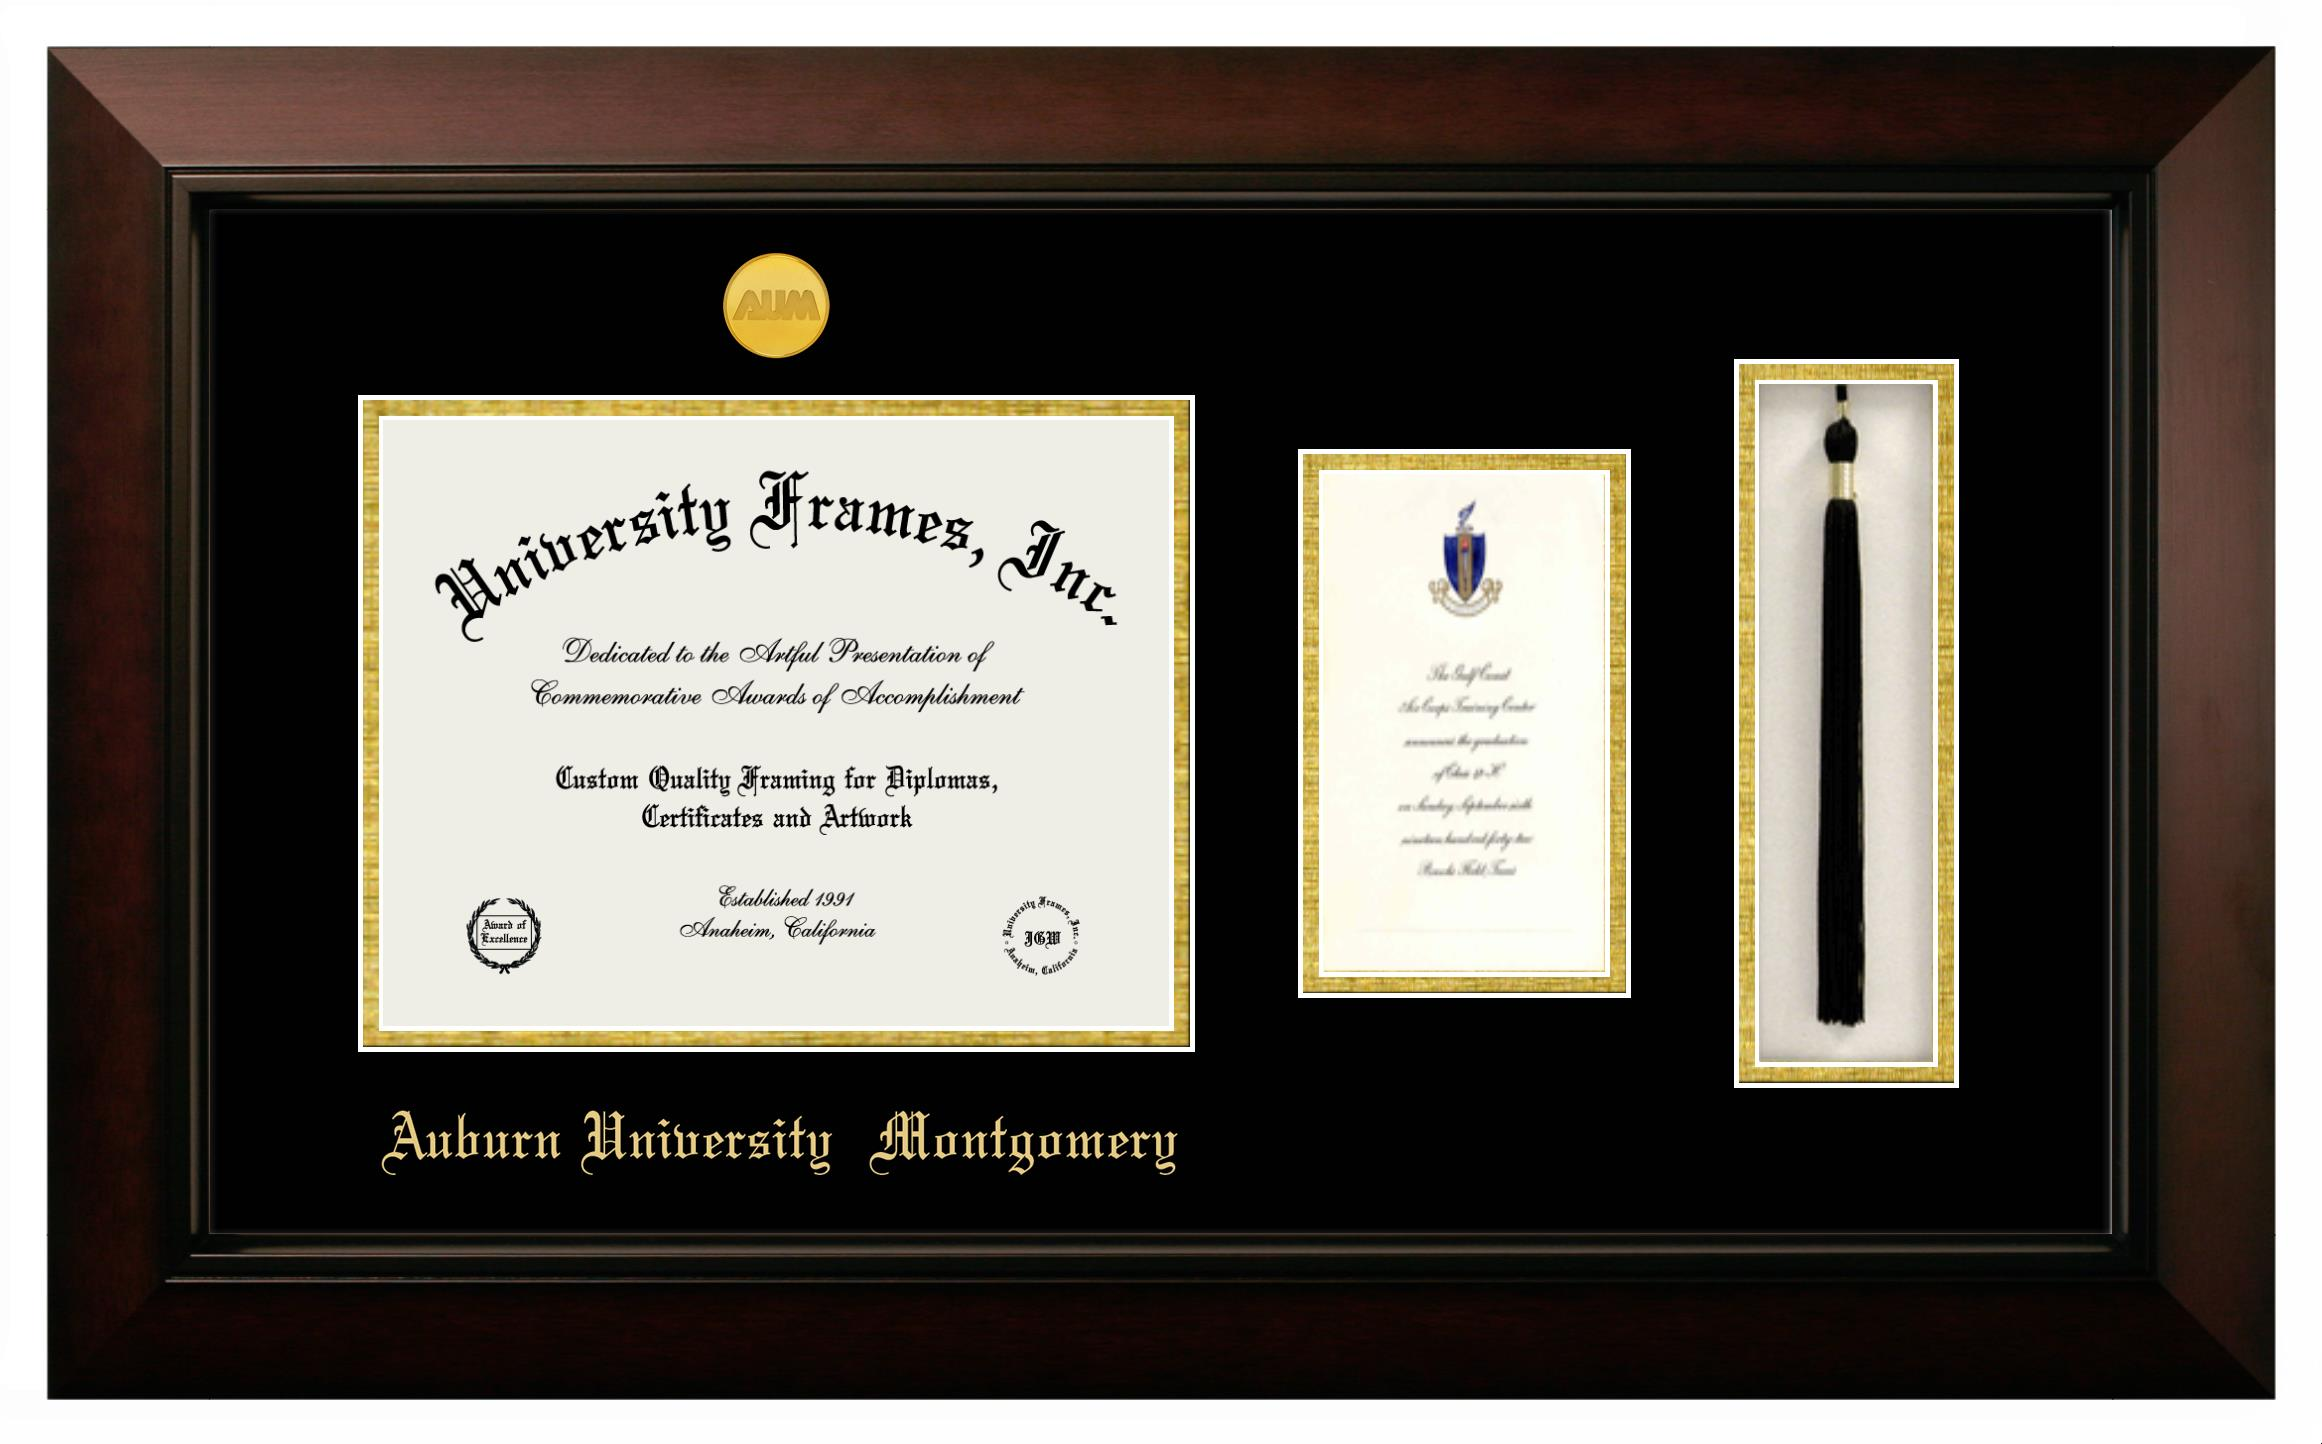 Auburn University Montgomery Diploma With Announcement Tassel Box Frame In Legacy Black Cherry With Black Gold Mats